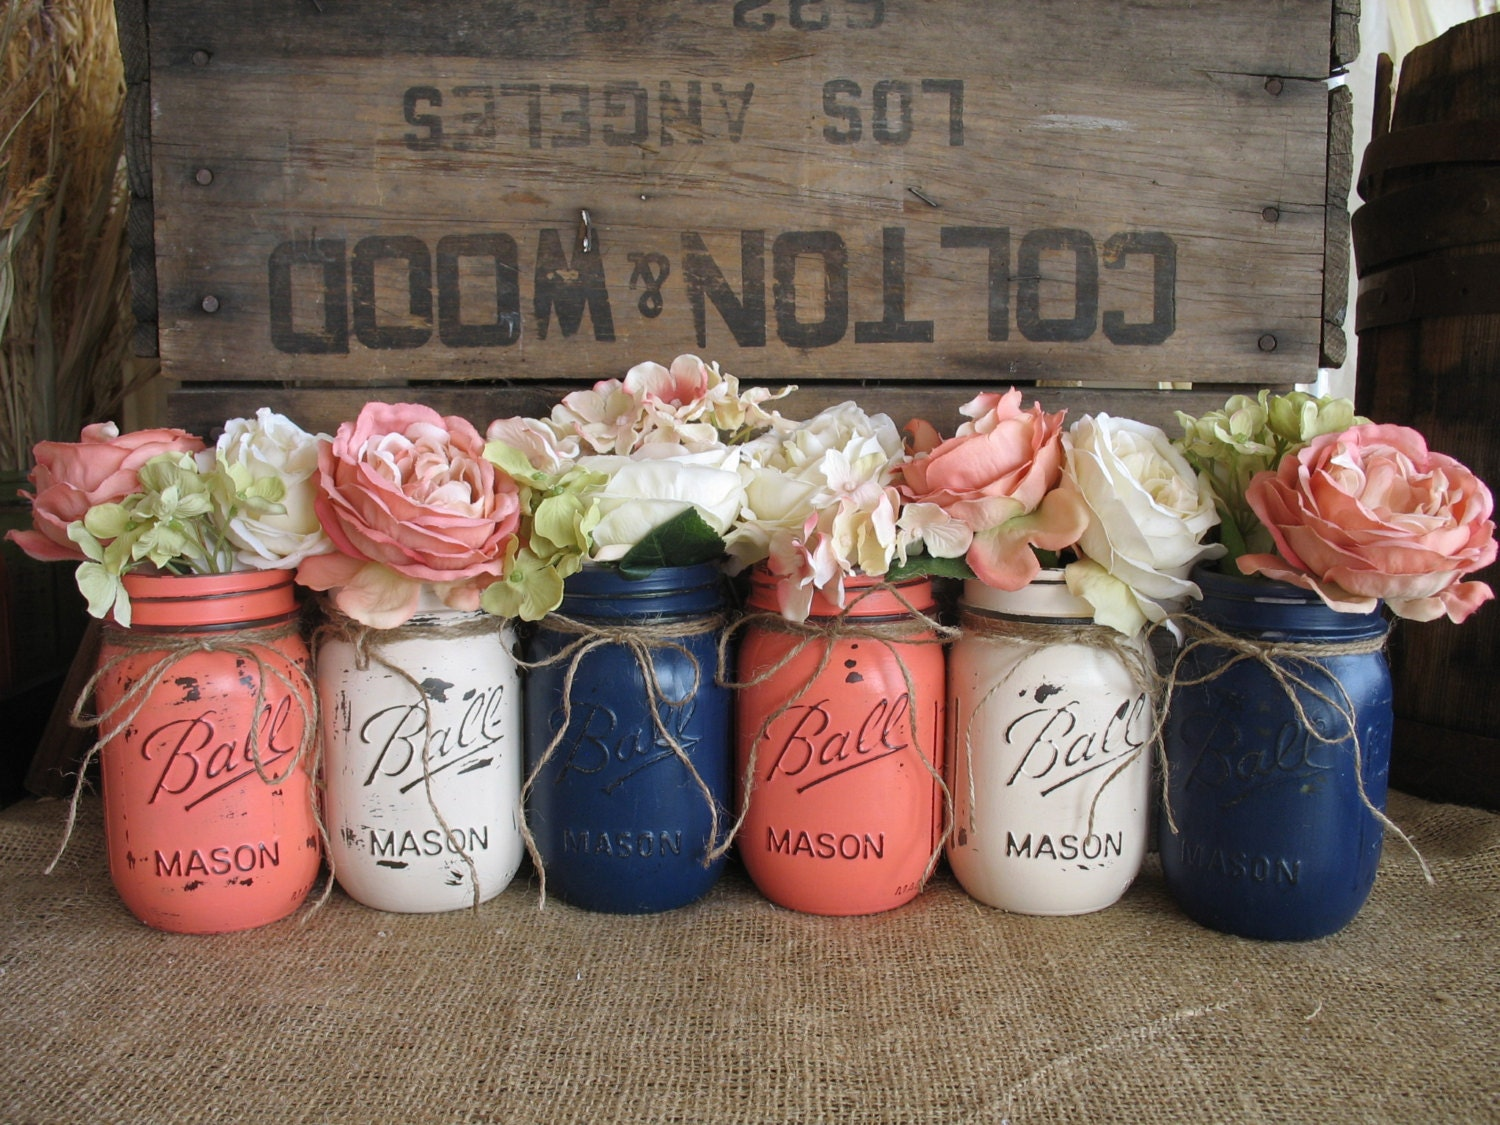 SALE 6 Pint Mason Jars Painted Mason Jars Flower Vases